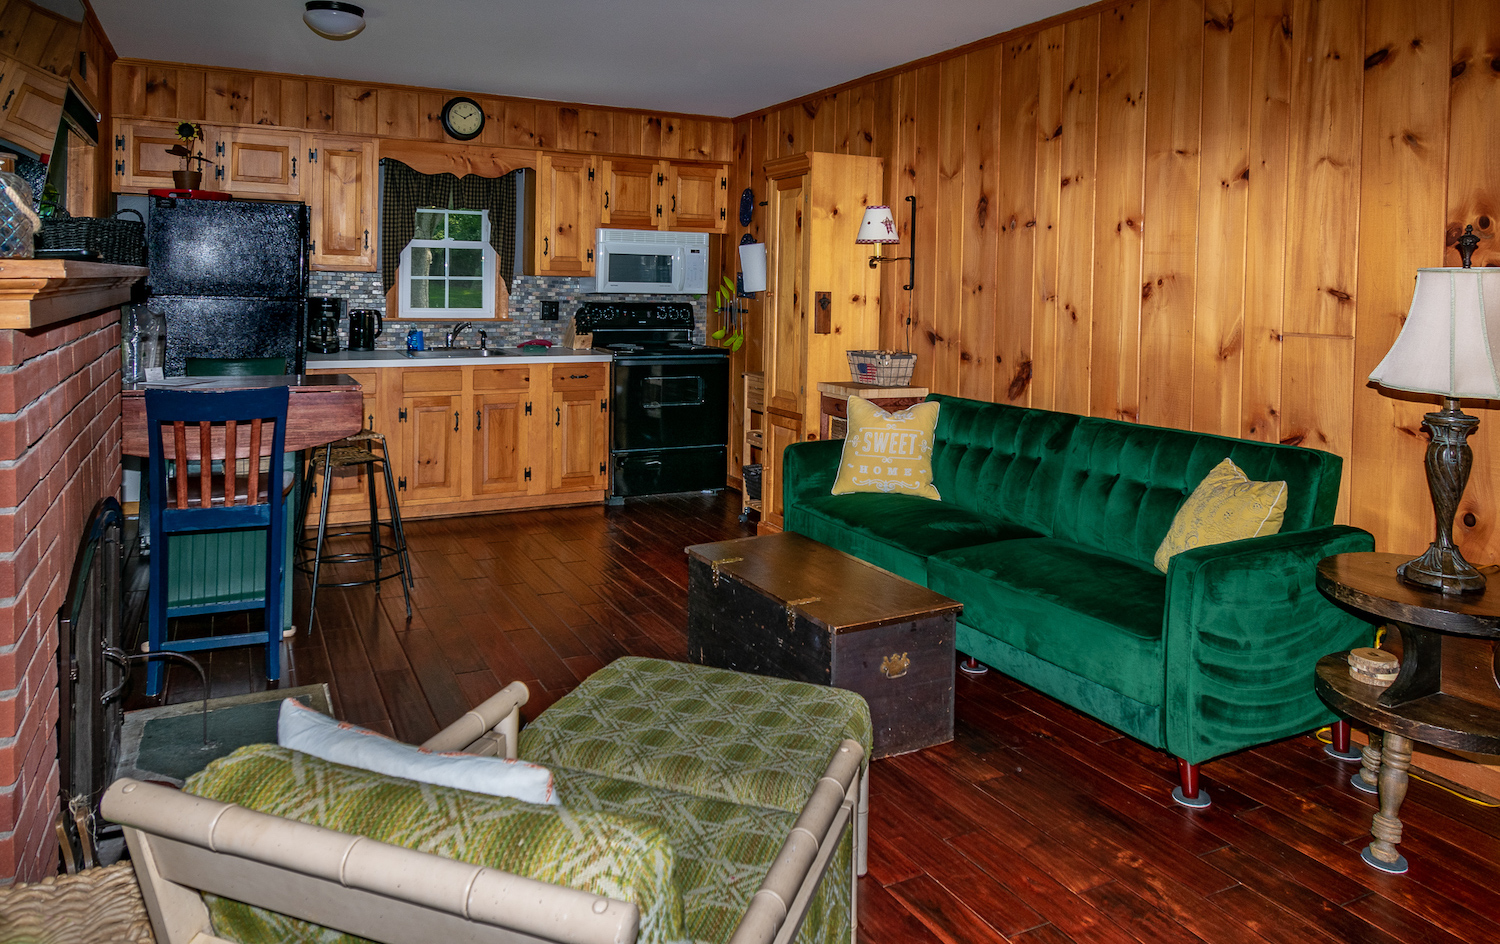 Lake George vacation cabin rental #28 knotty pine living room and kitchen at Takundewide Cottages